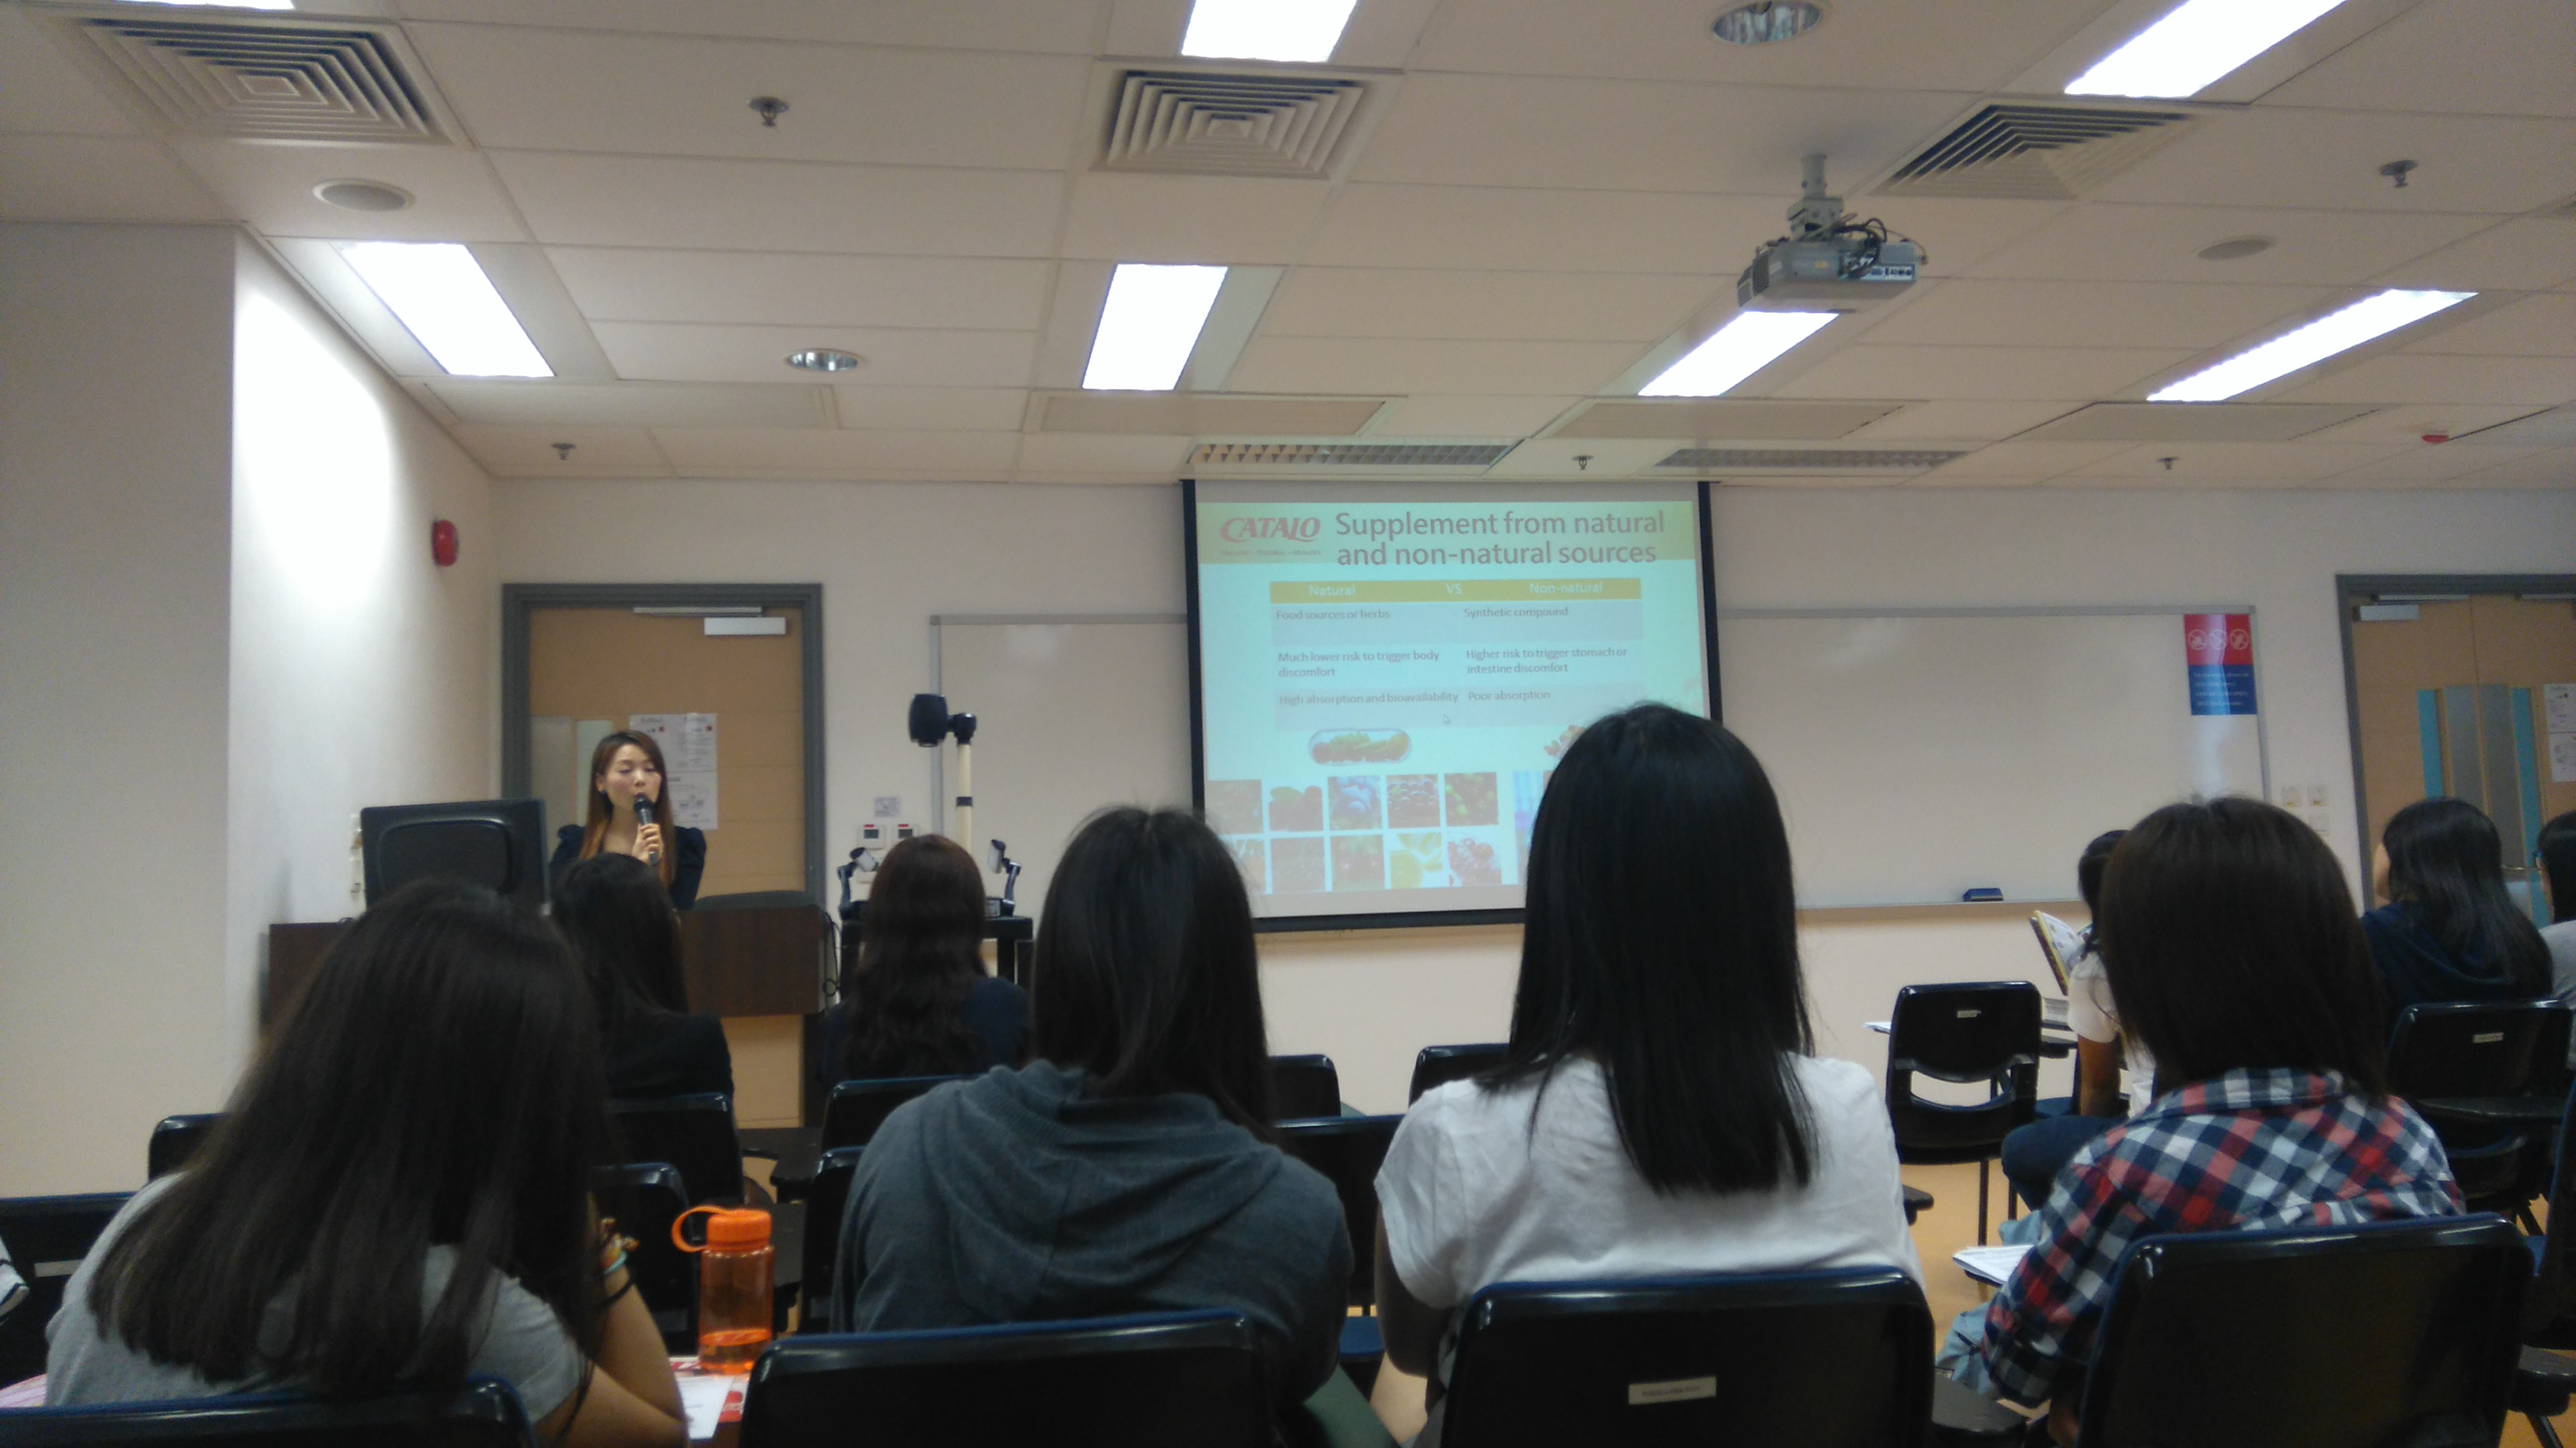 The nutrition supplements industry, a talk and site visit given by CATALO - Photo - 5